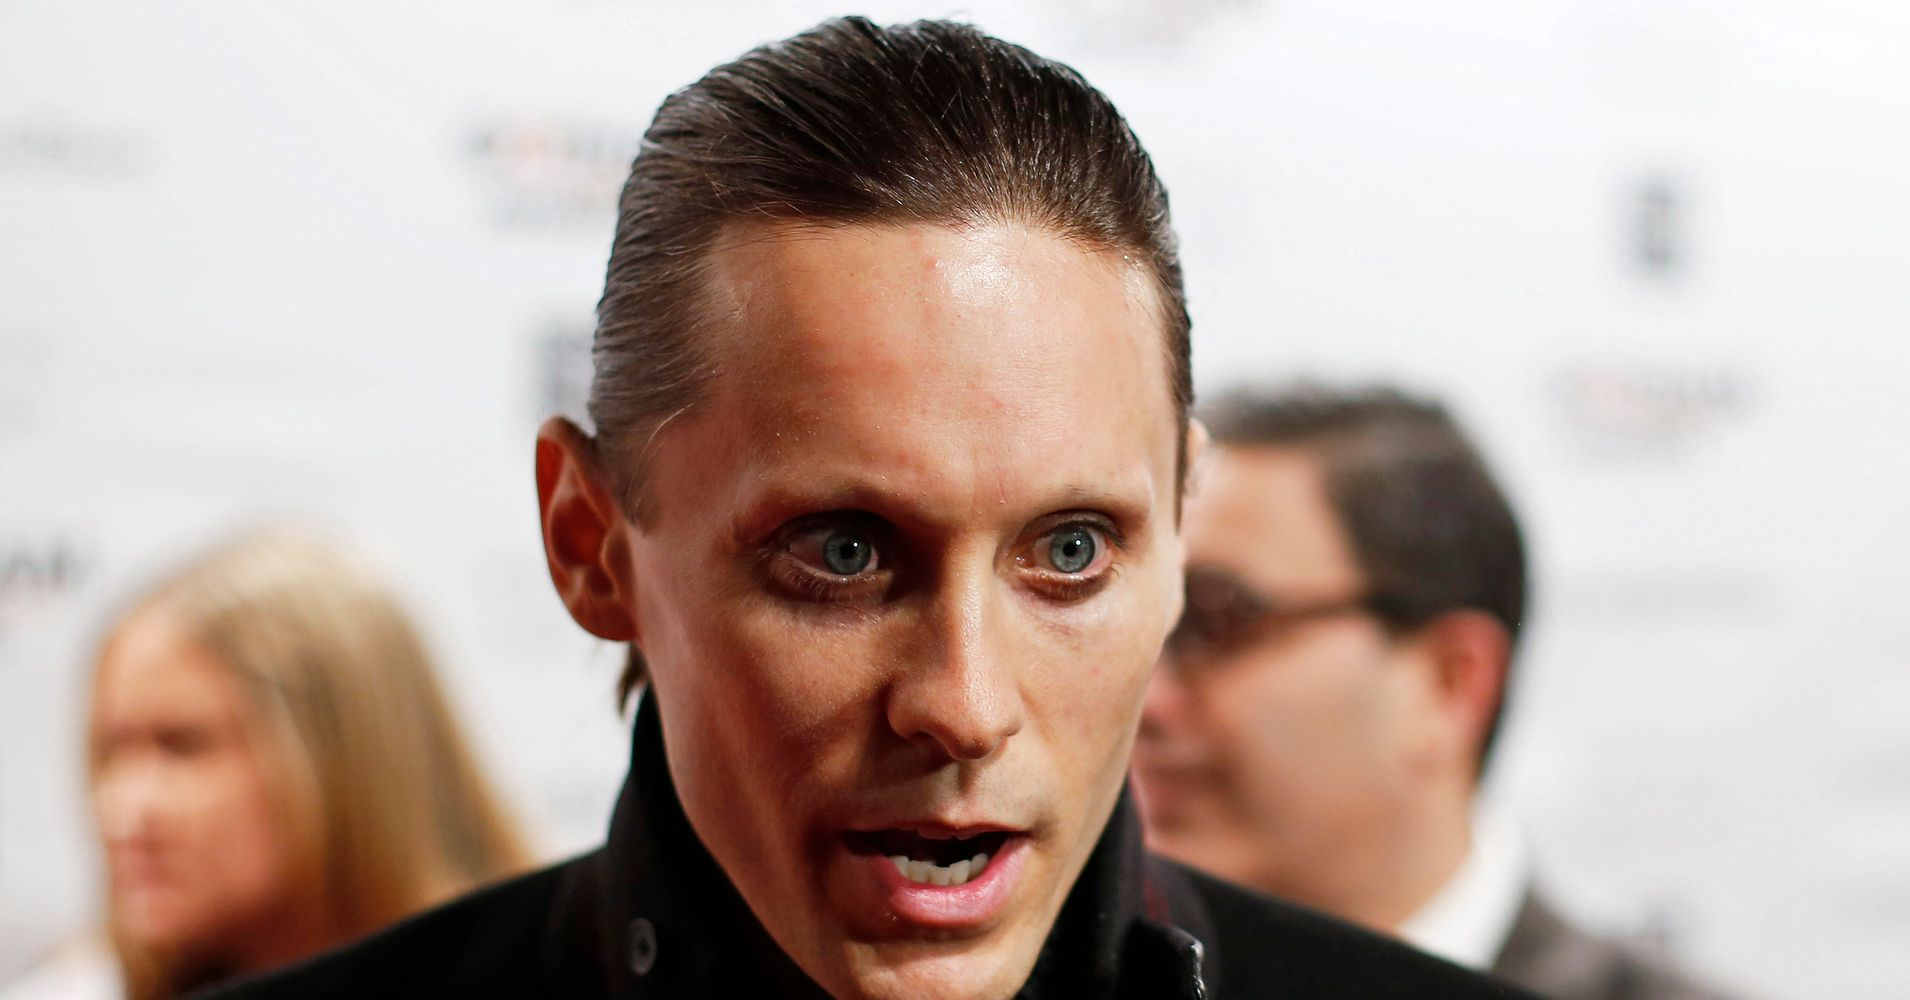 Jared Leto Nearly Sacrificed His Eyebrows For The Sake Of Acting